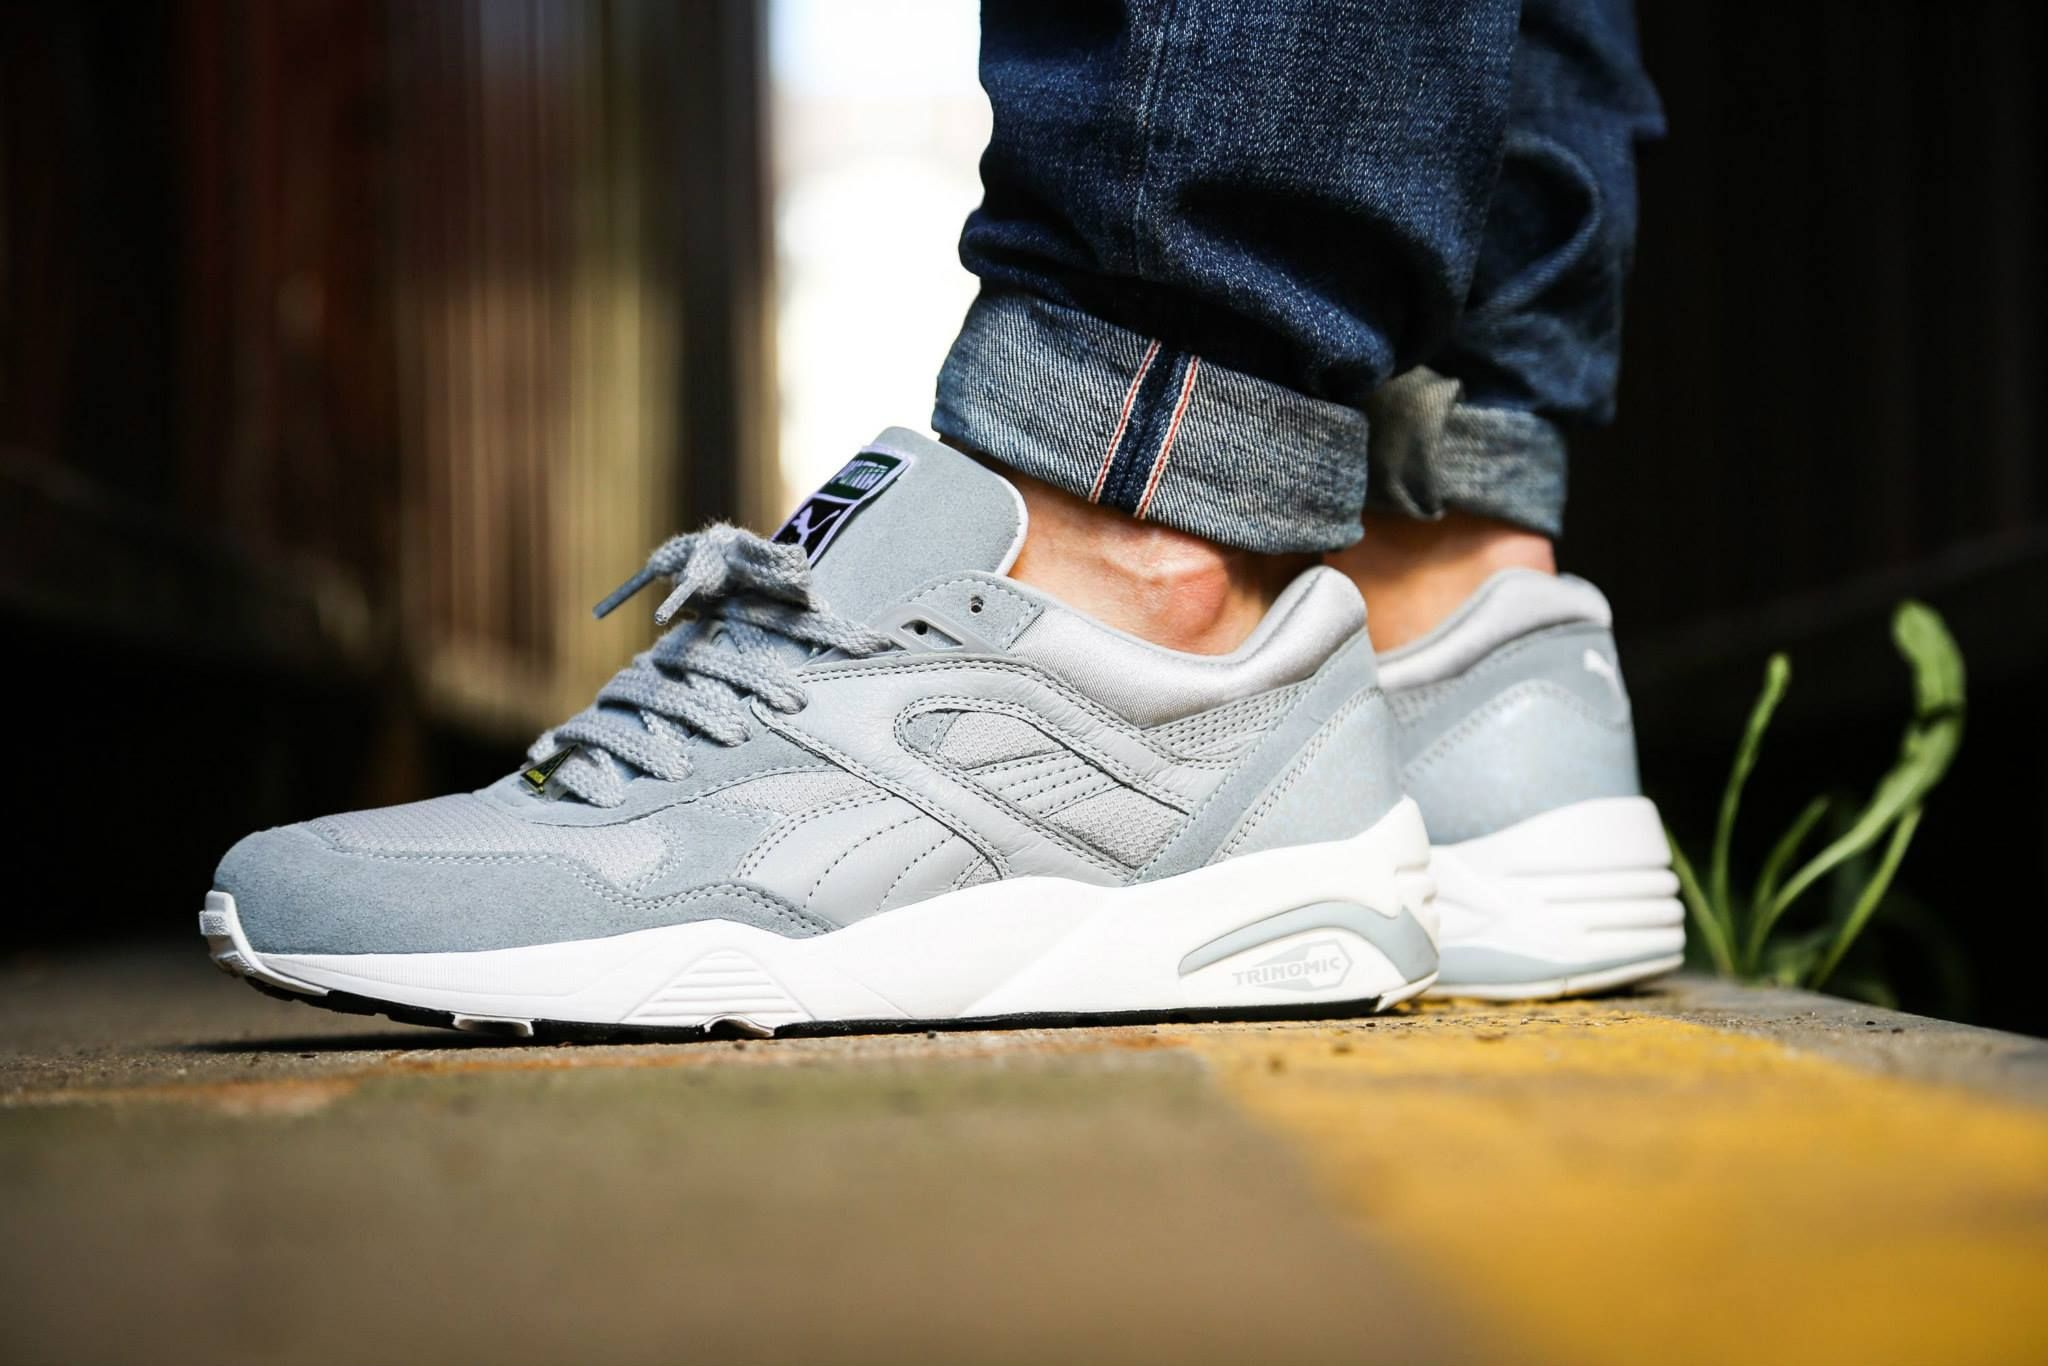 Puma Trinomic R698 | Sneakers men fashion, Mens shoes casual ...